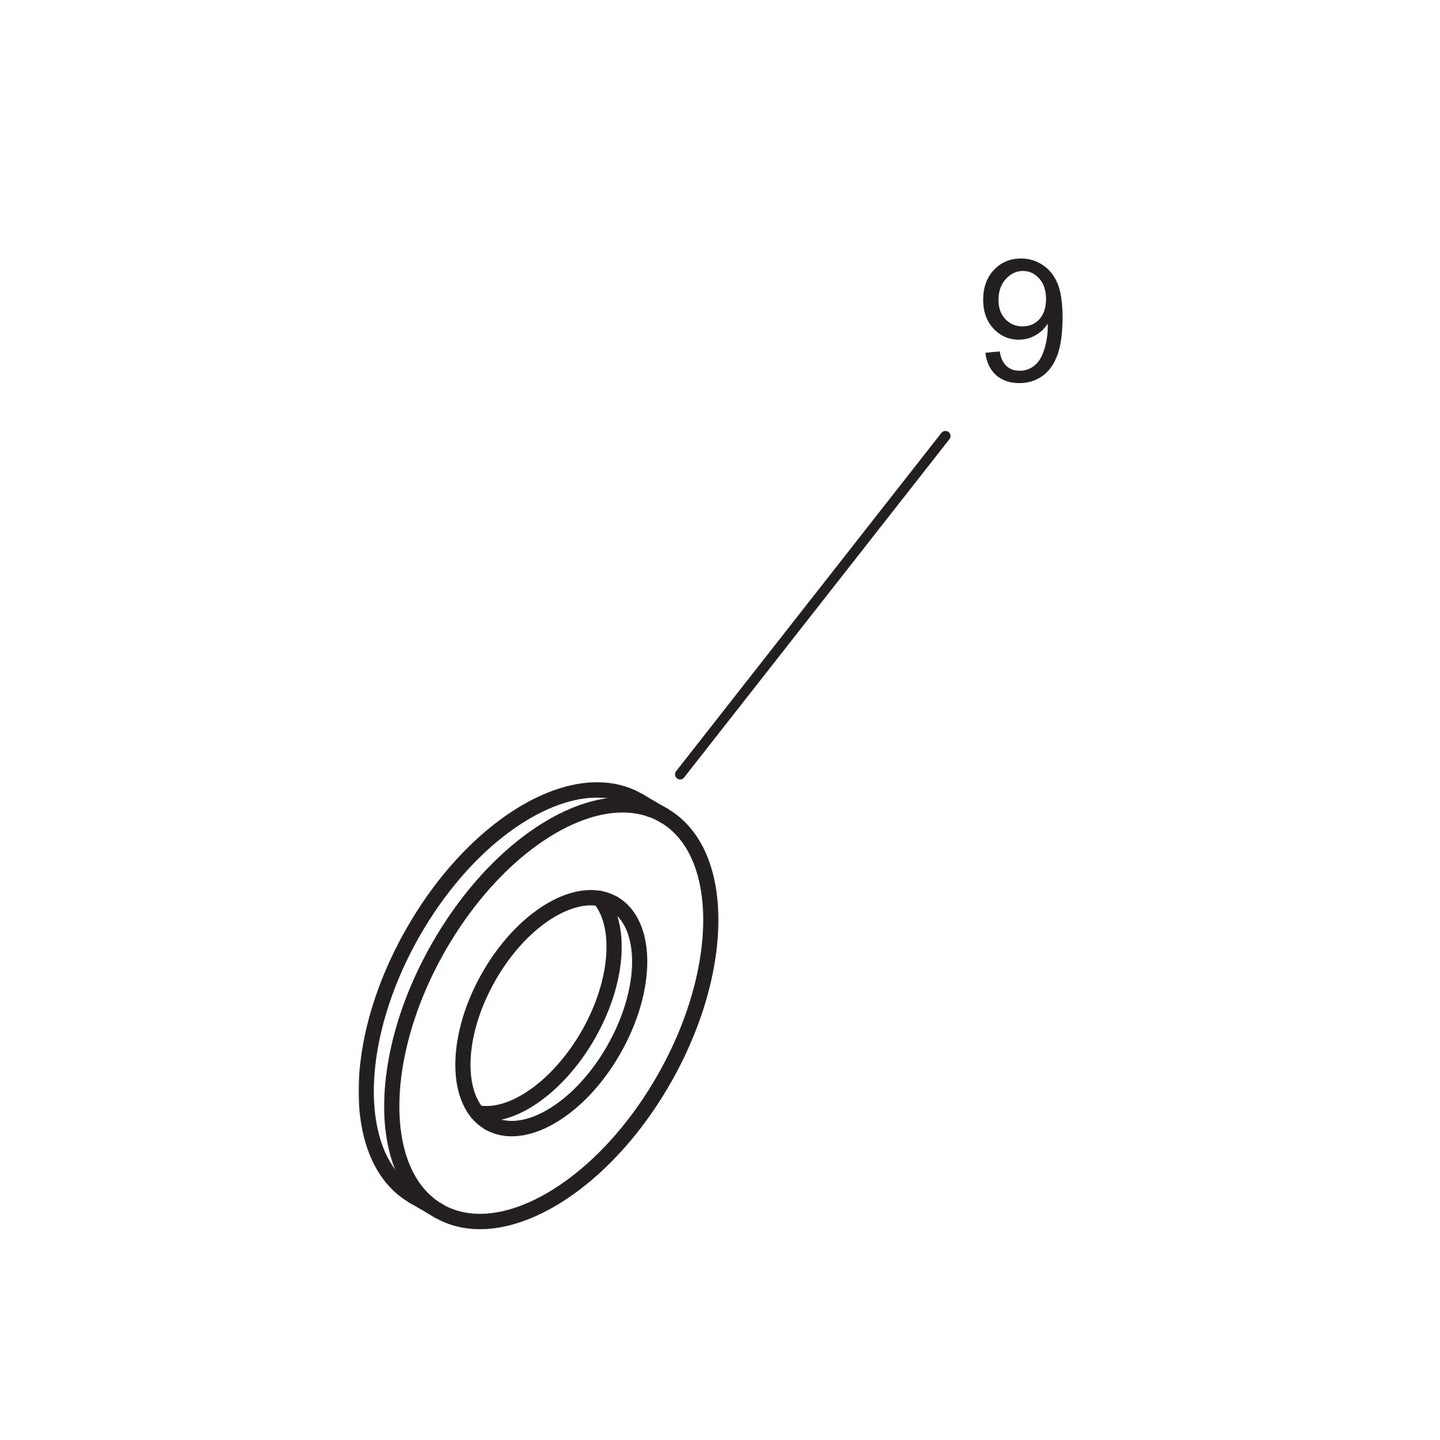 Rear Axle Bearing Support Flat Washer - 1937-39 Models